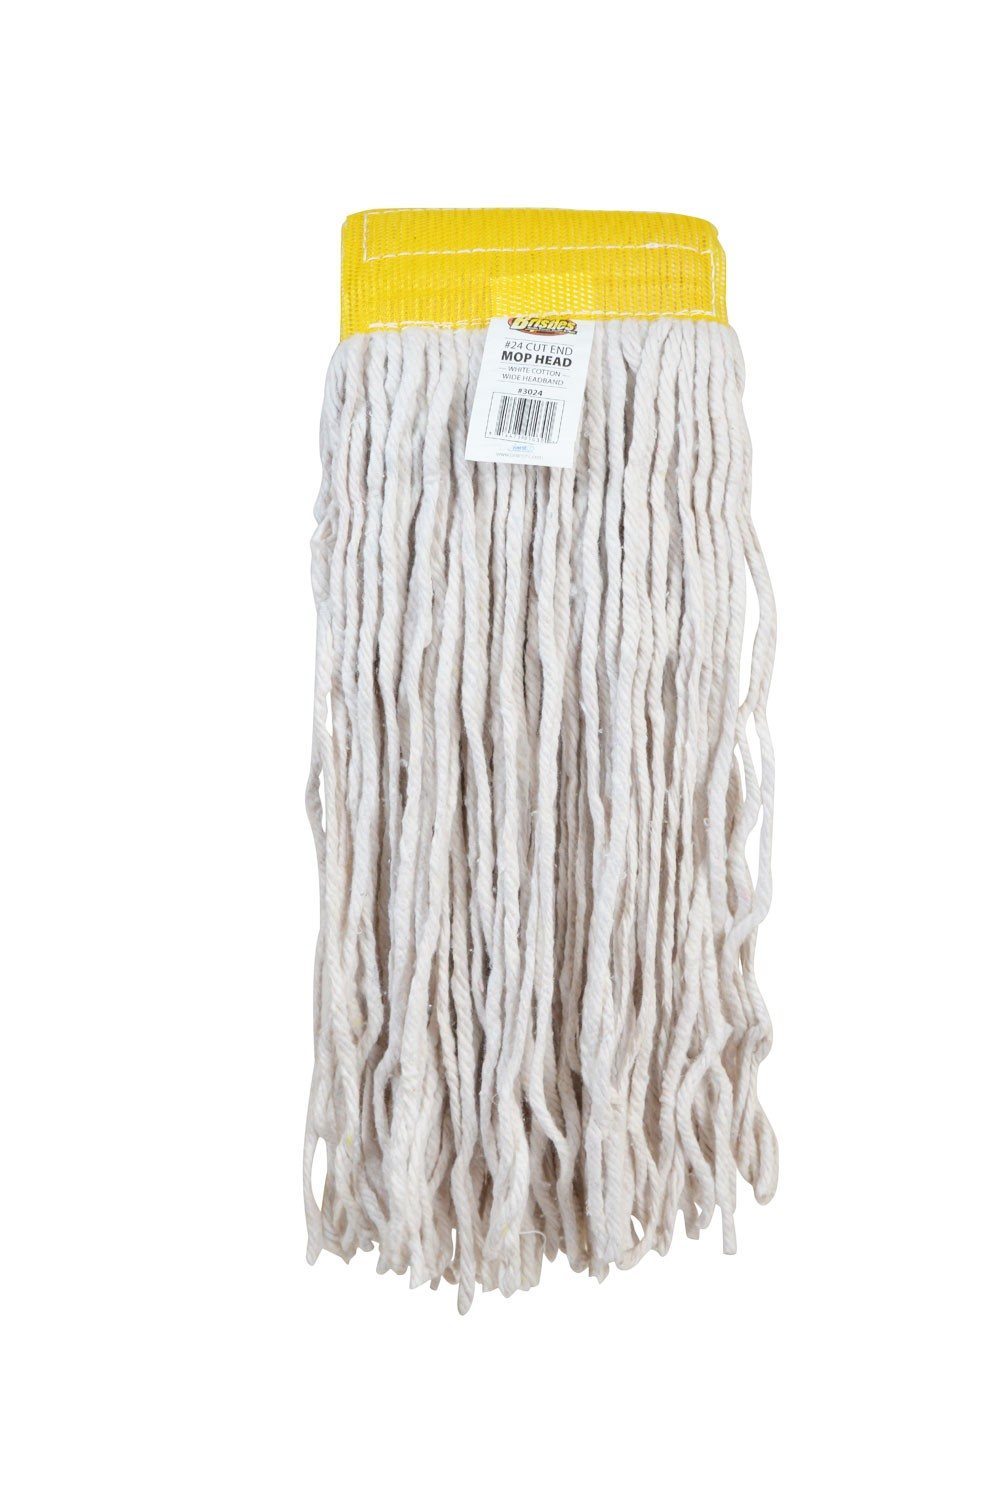 #24 4-ply Cotton Mop Head (12/cs)